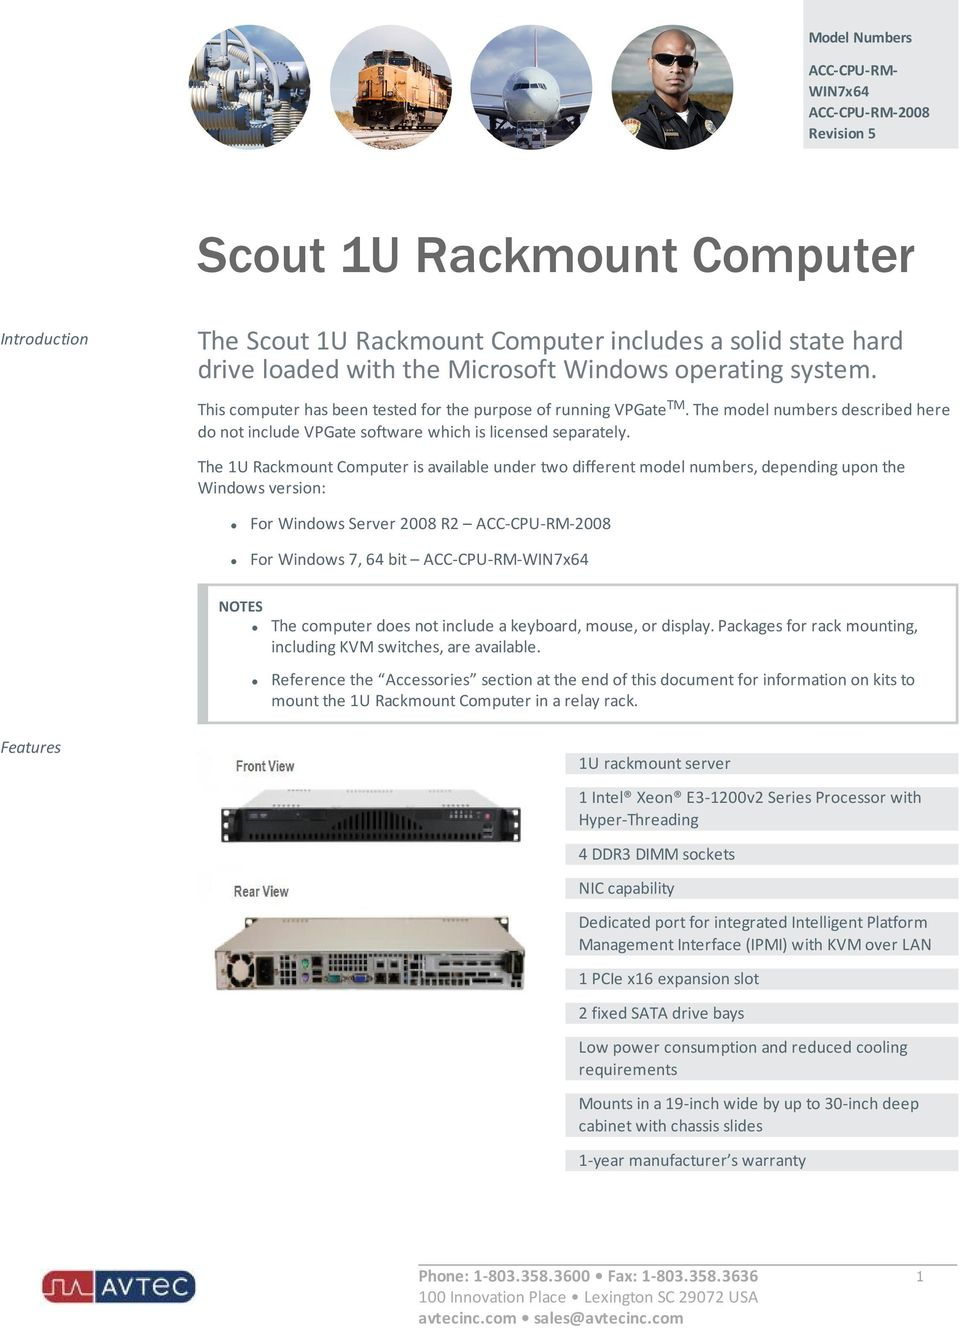 The 1U Rackmount Computer is available under two different model numbers, depending upon the Windows version: For Windows Server 2008 R2 ACC-CPU-RM-2008 For Windows 7, 64 bit ACC-CPU-RM-WIN7x64 NOTES